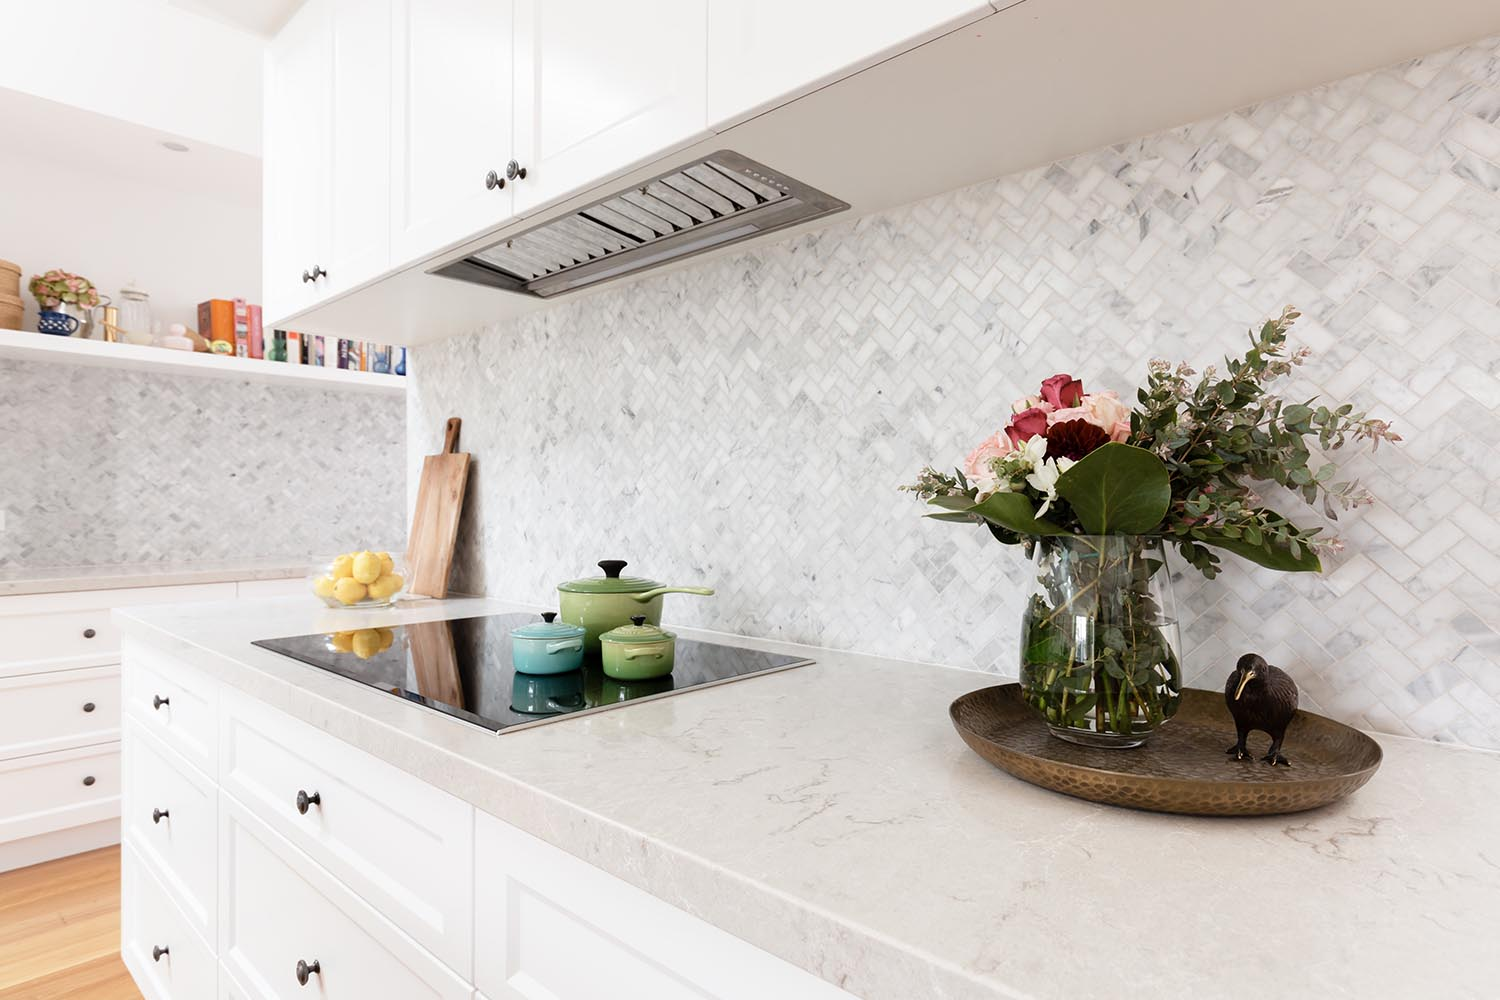 Cost Of New Kitchen | Kitchen Renovation Cost How Much Does A New Kitchen Cost